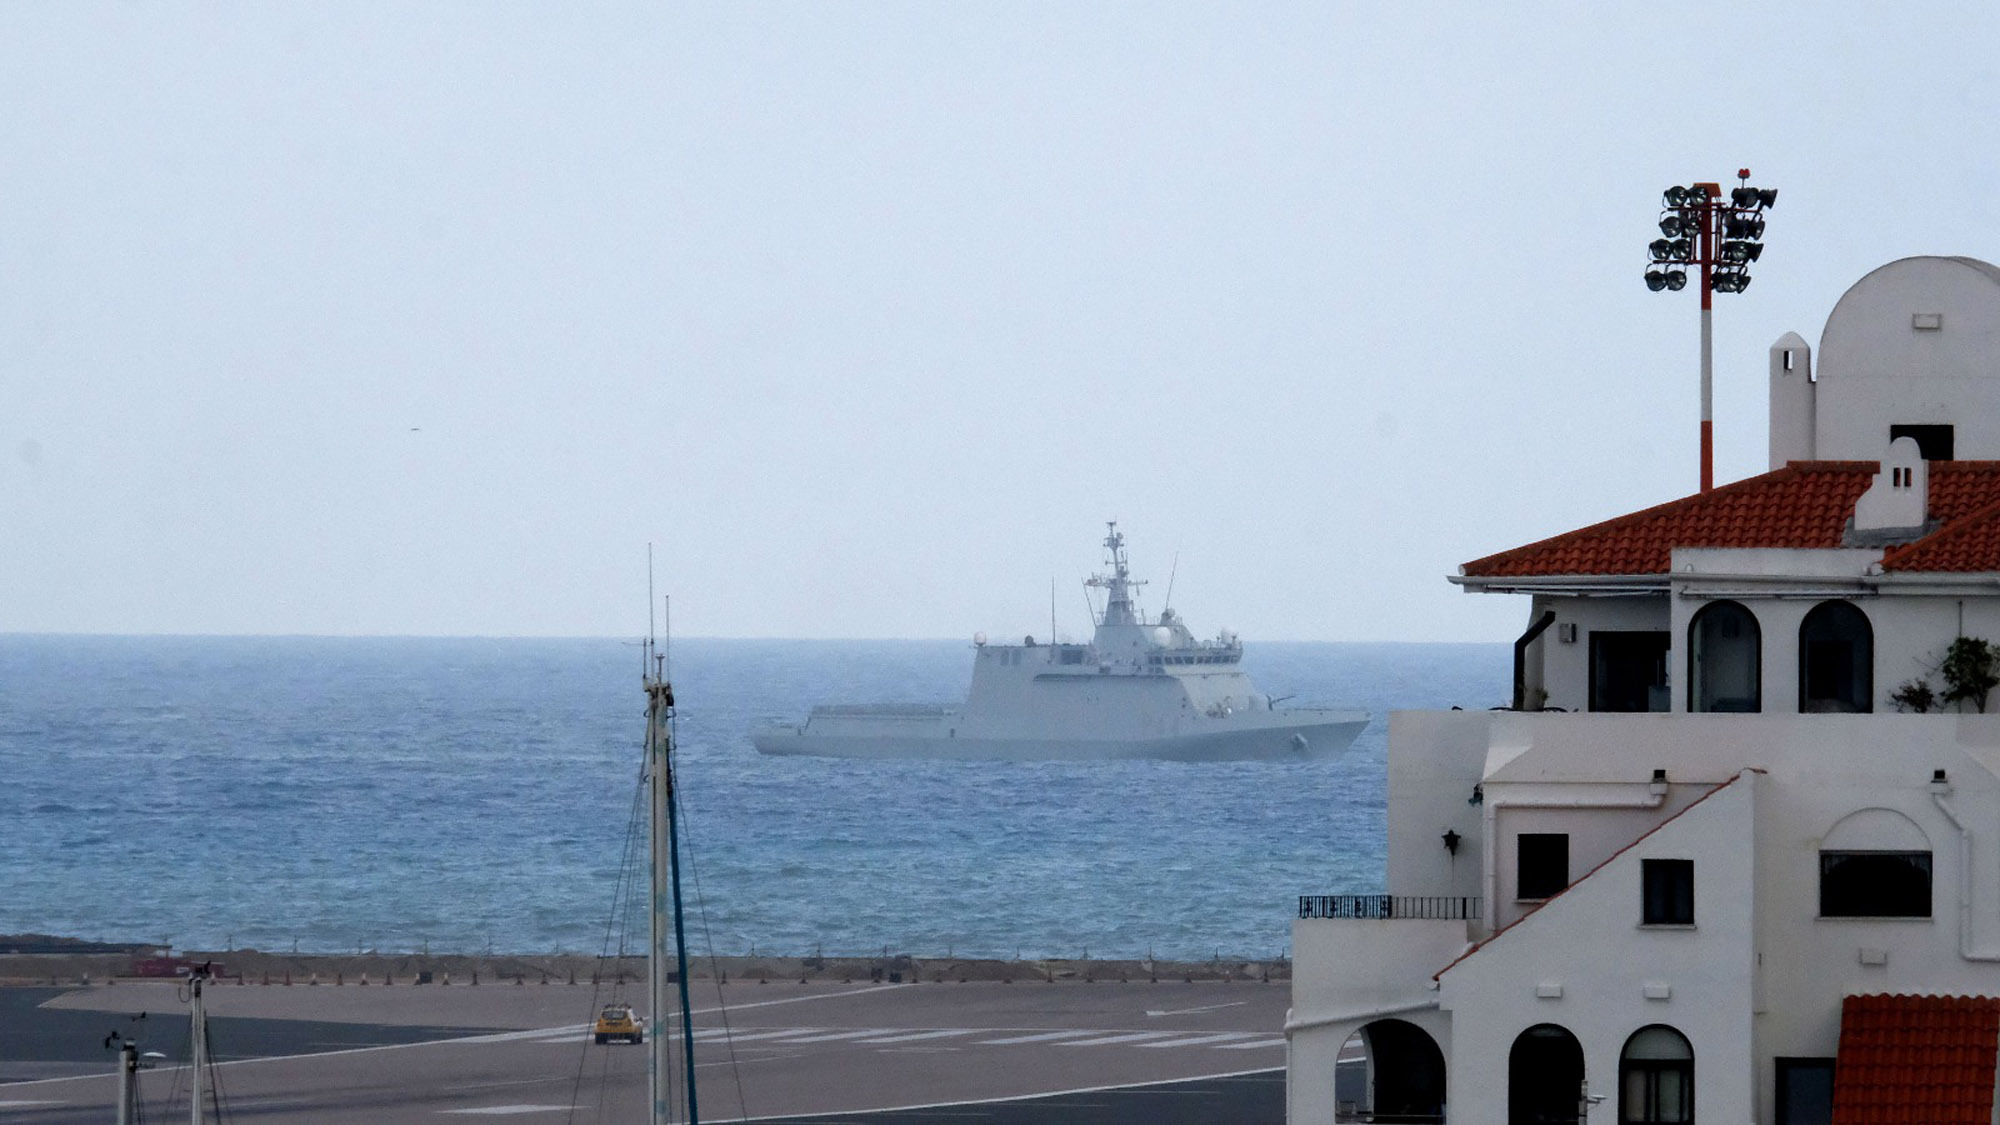 Spanish warship ordered commercial vessels to leave British waters near Gibraltar